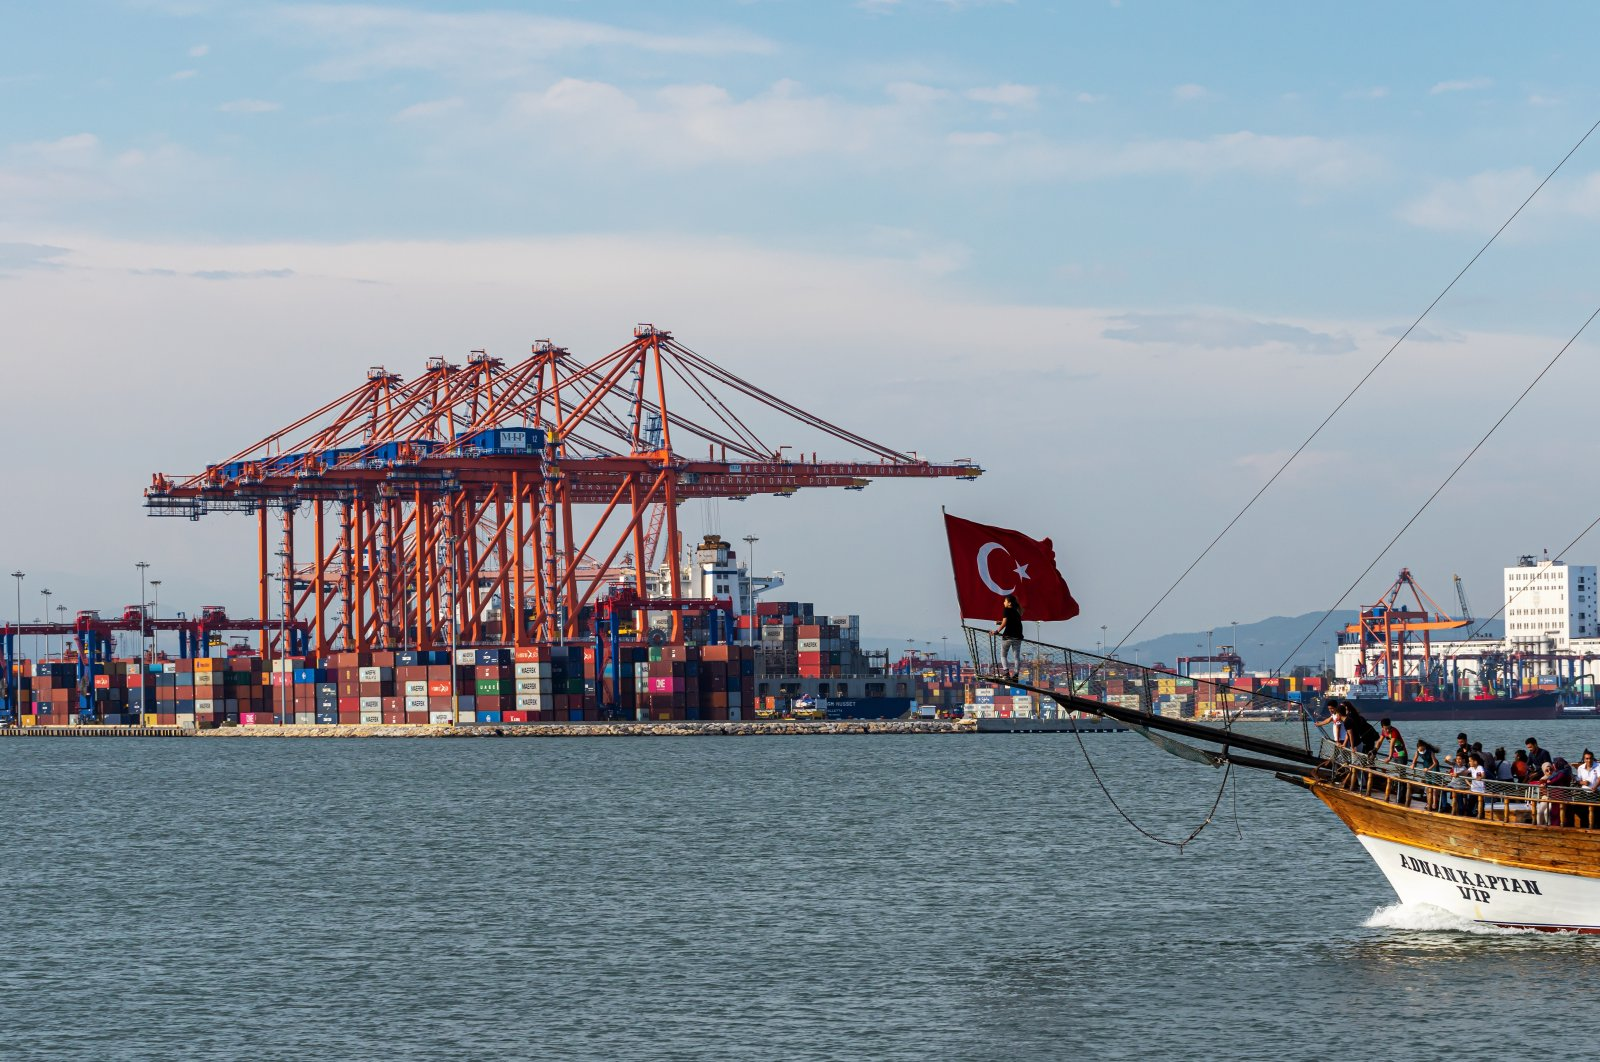 Containers seen at the Mersin International Port (MIP) in Mersin, southern Turkey, June, 14, 2020. (Shutterstock Photo)